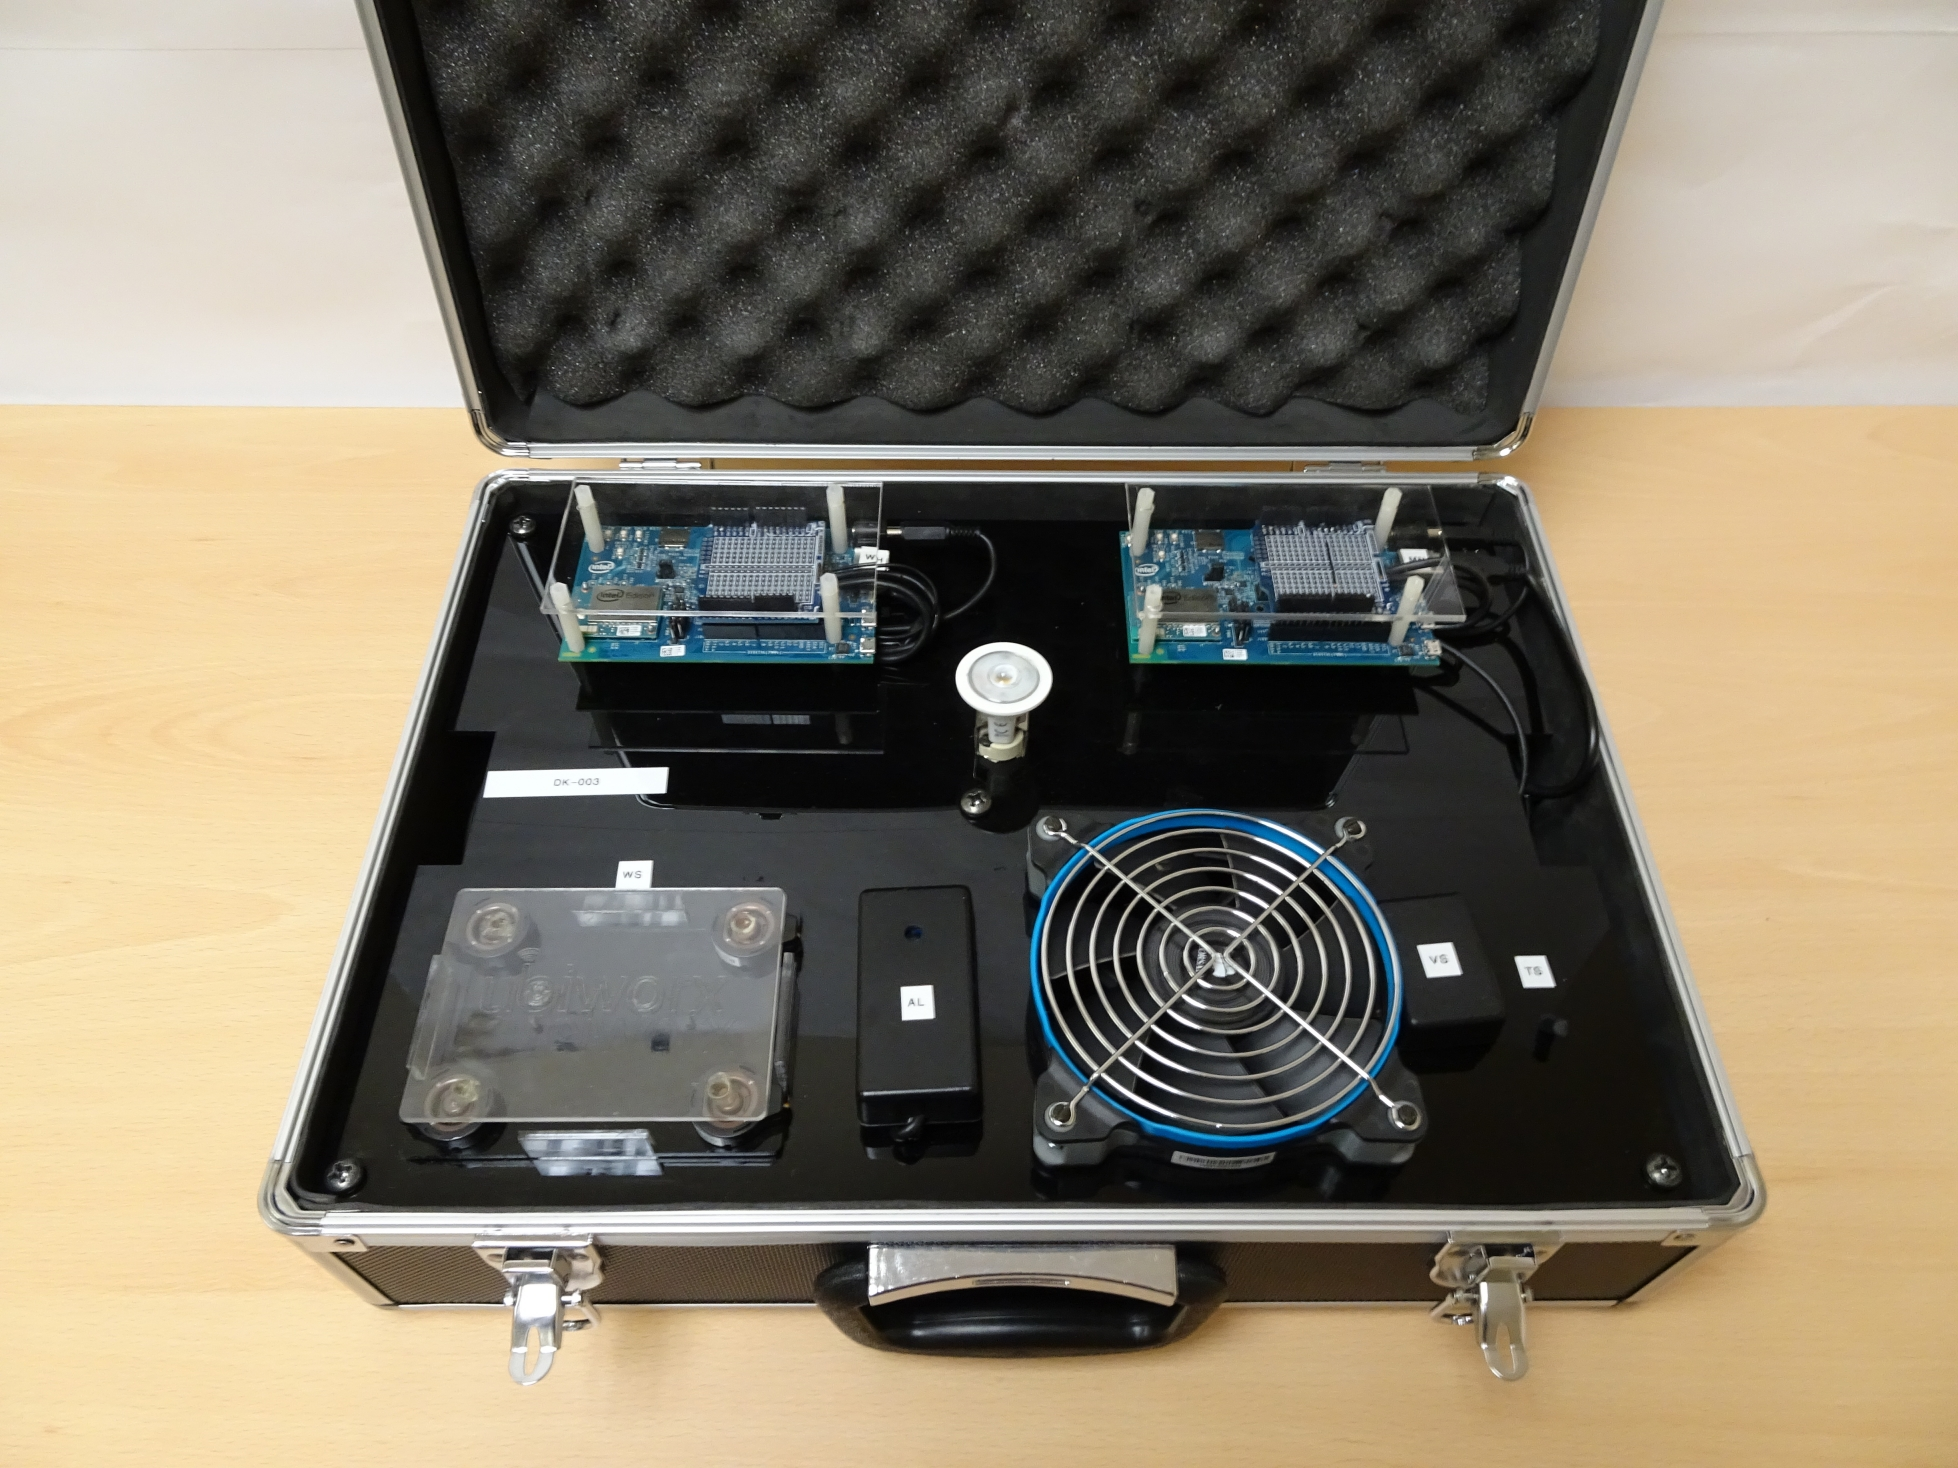 emutex portable industrial plant monitoring system 1